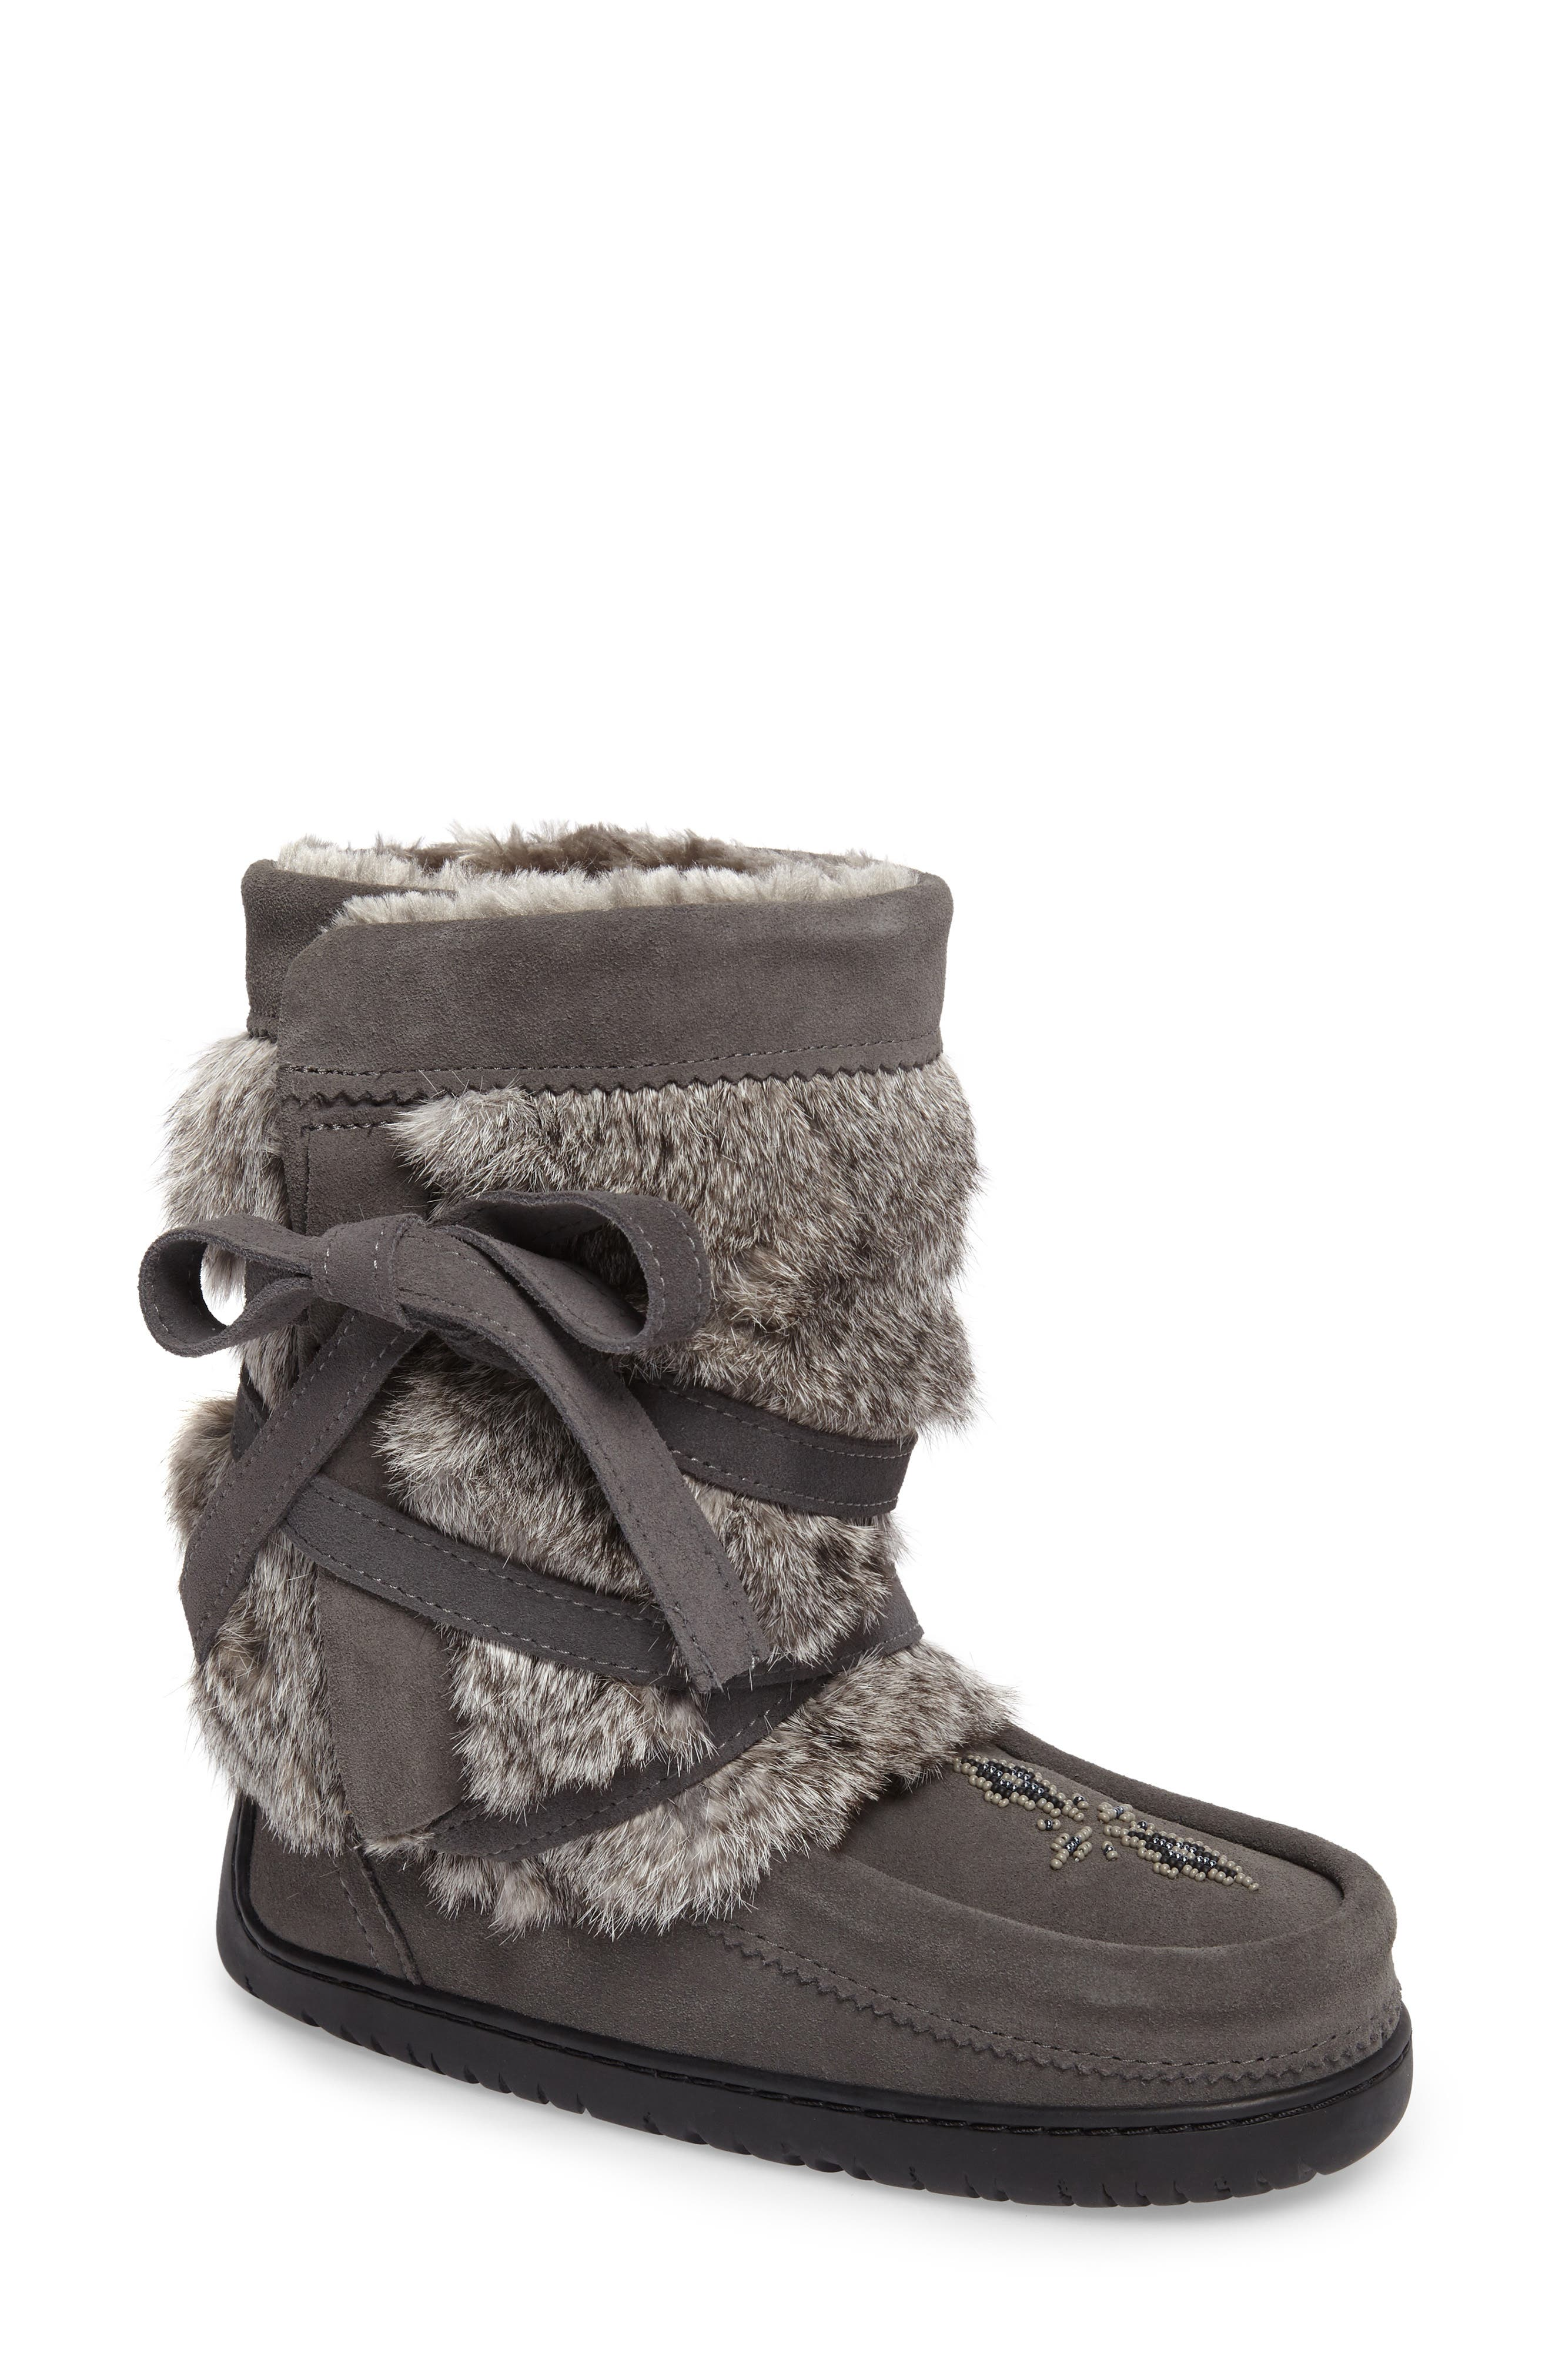 MANITOBAH MUKLUKS Beaded Short Wrap Genuine Rabbit Fur & Shearling Boot in Charcoal Fur